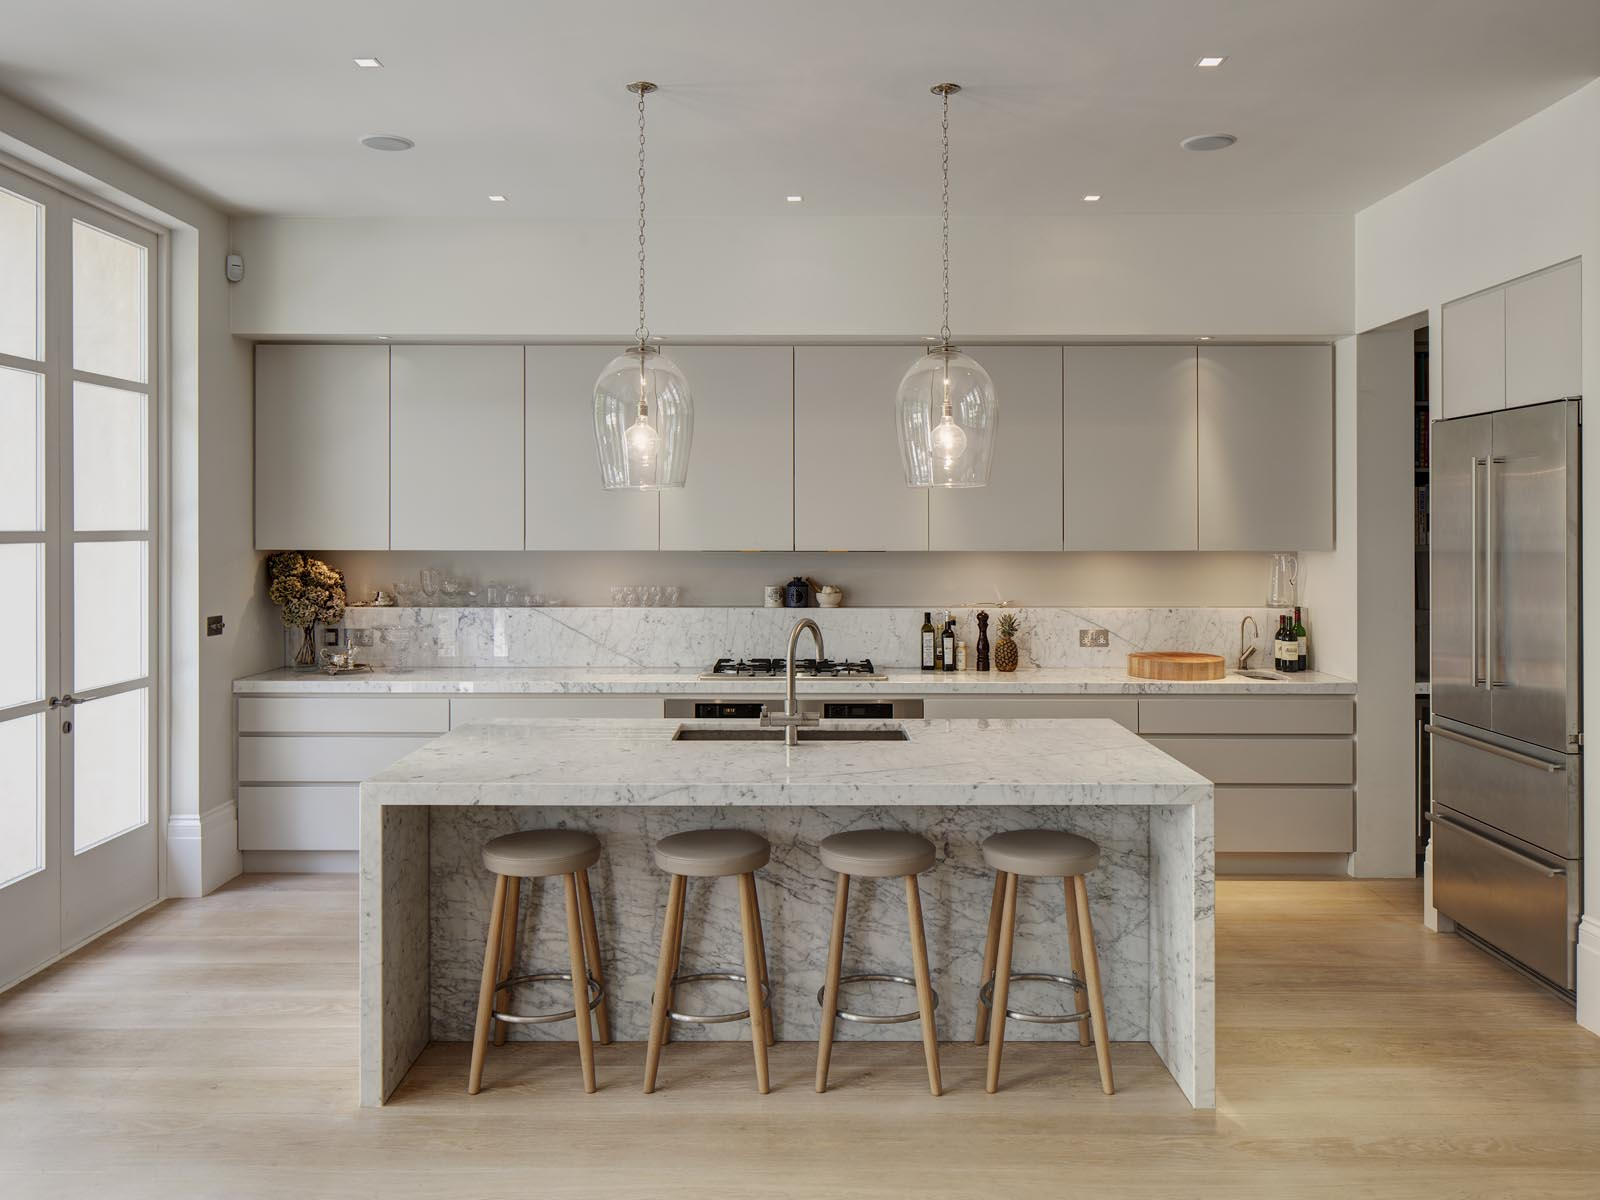 GJ-Kitchens-modren-and-contemporary-8-20180815033701250